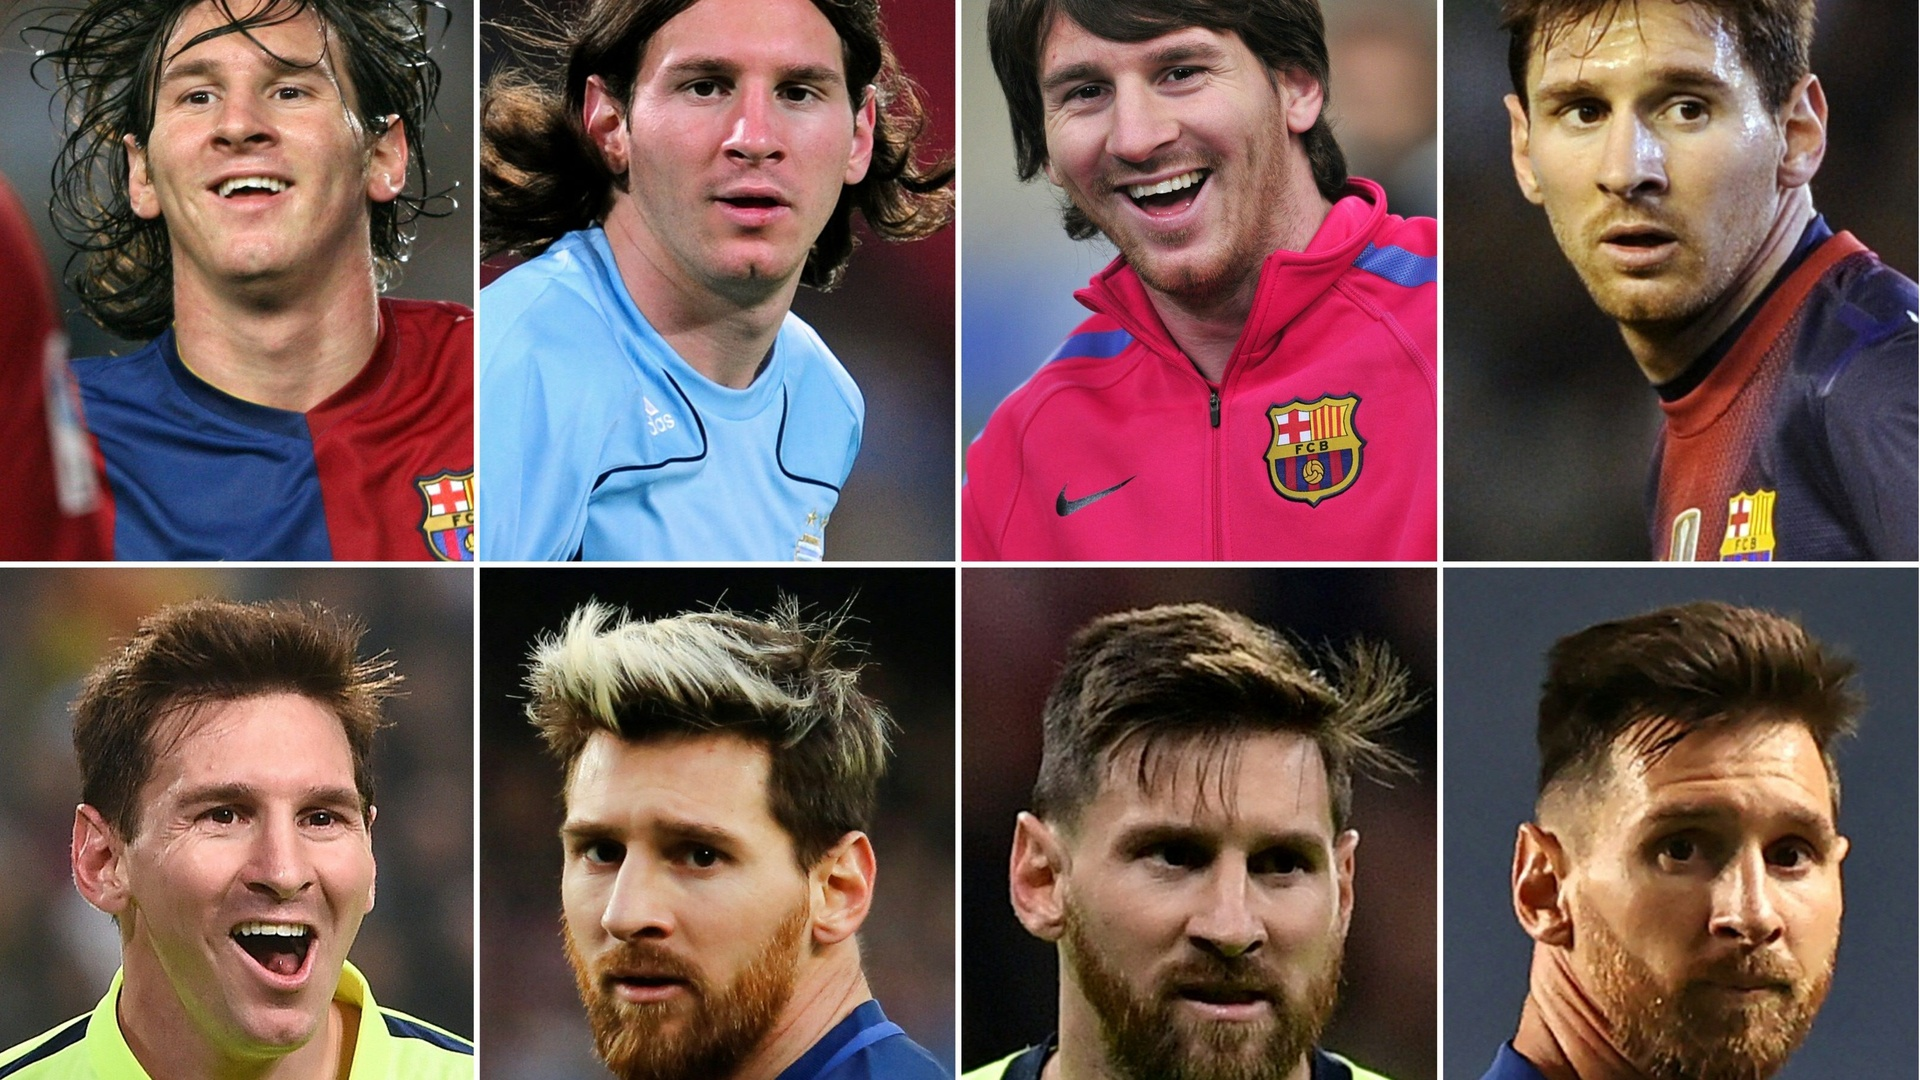 Why did Barcelona drop Messi?